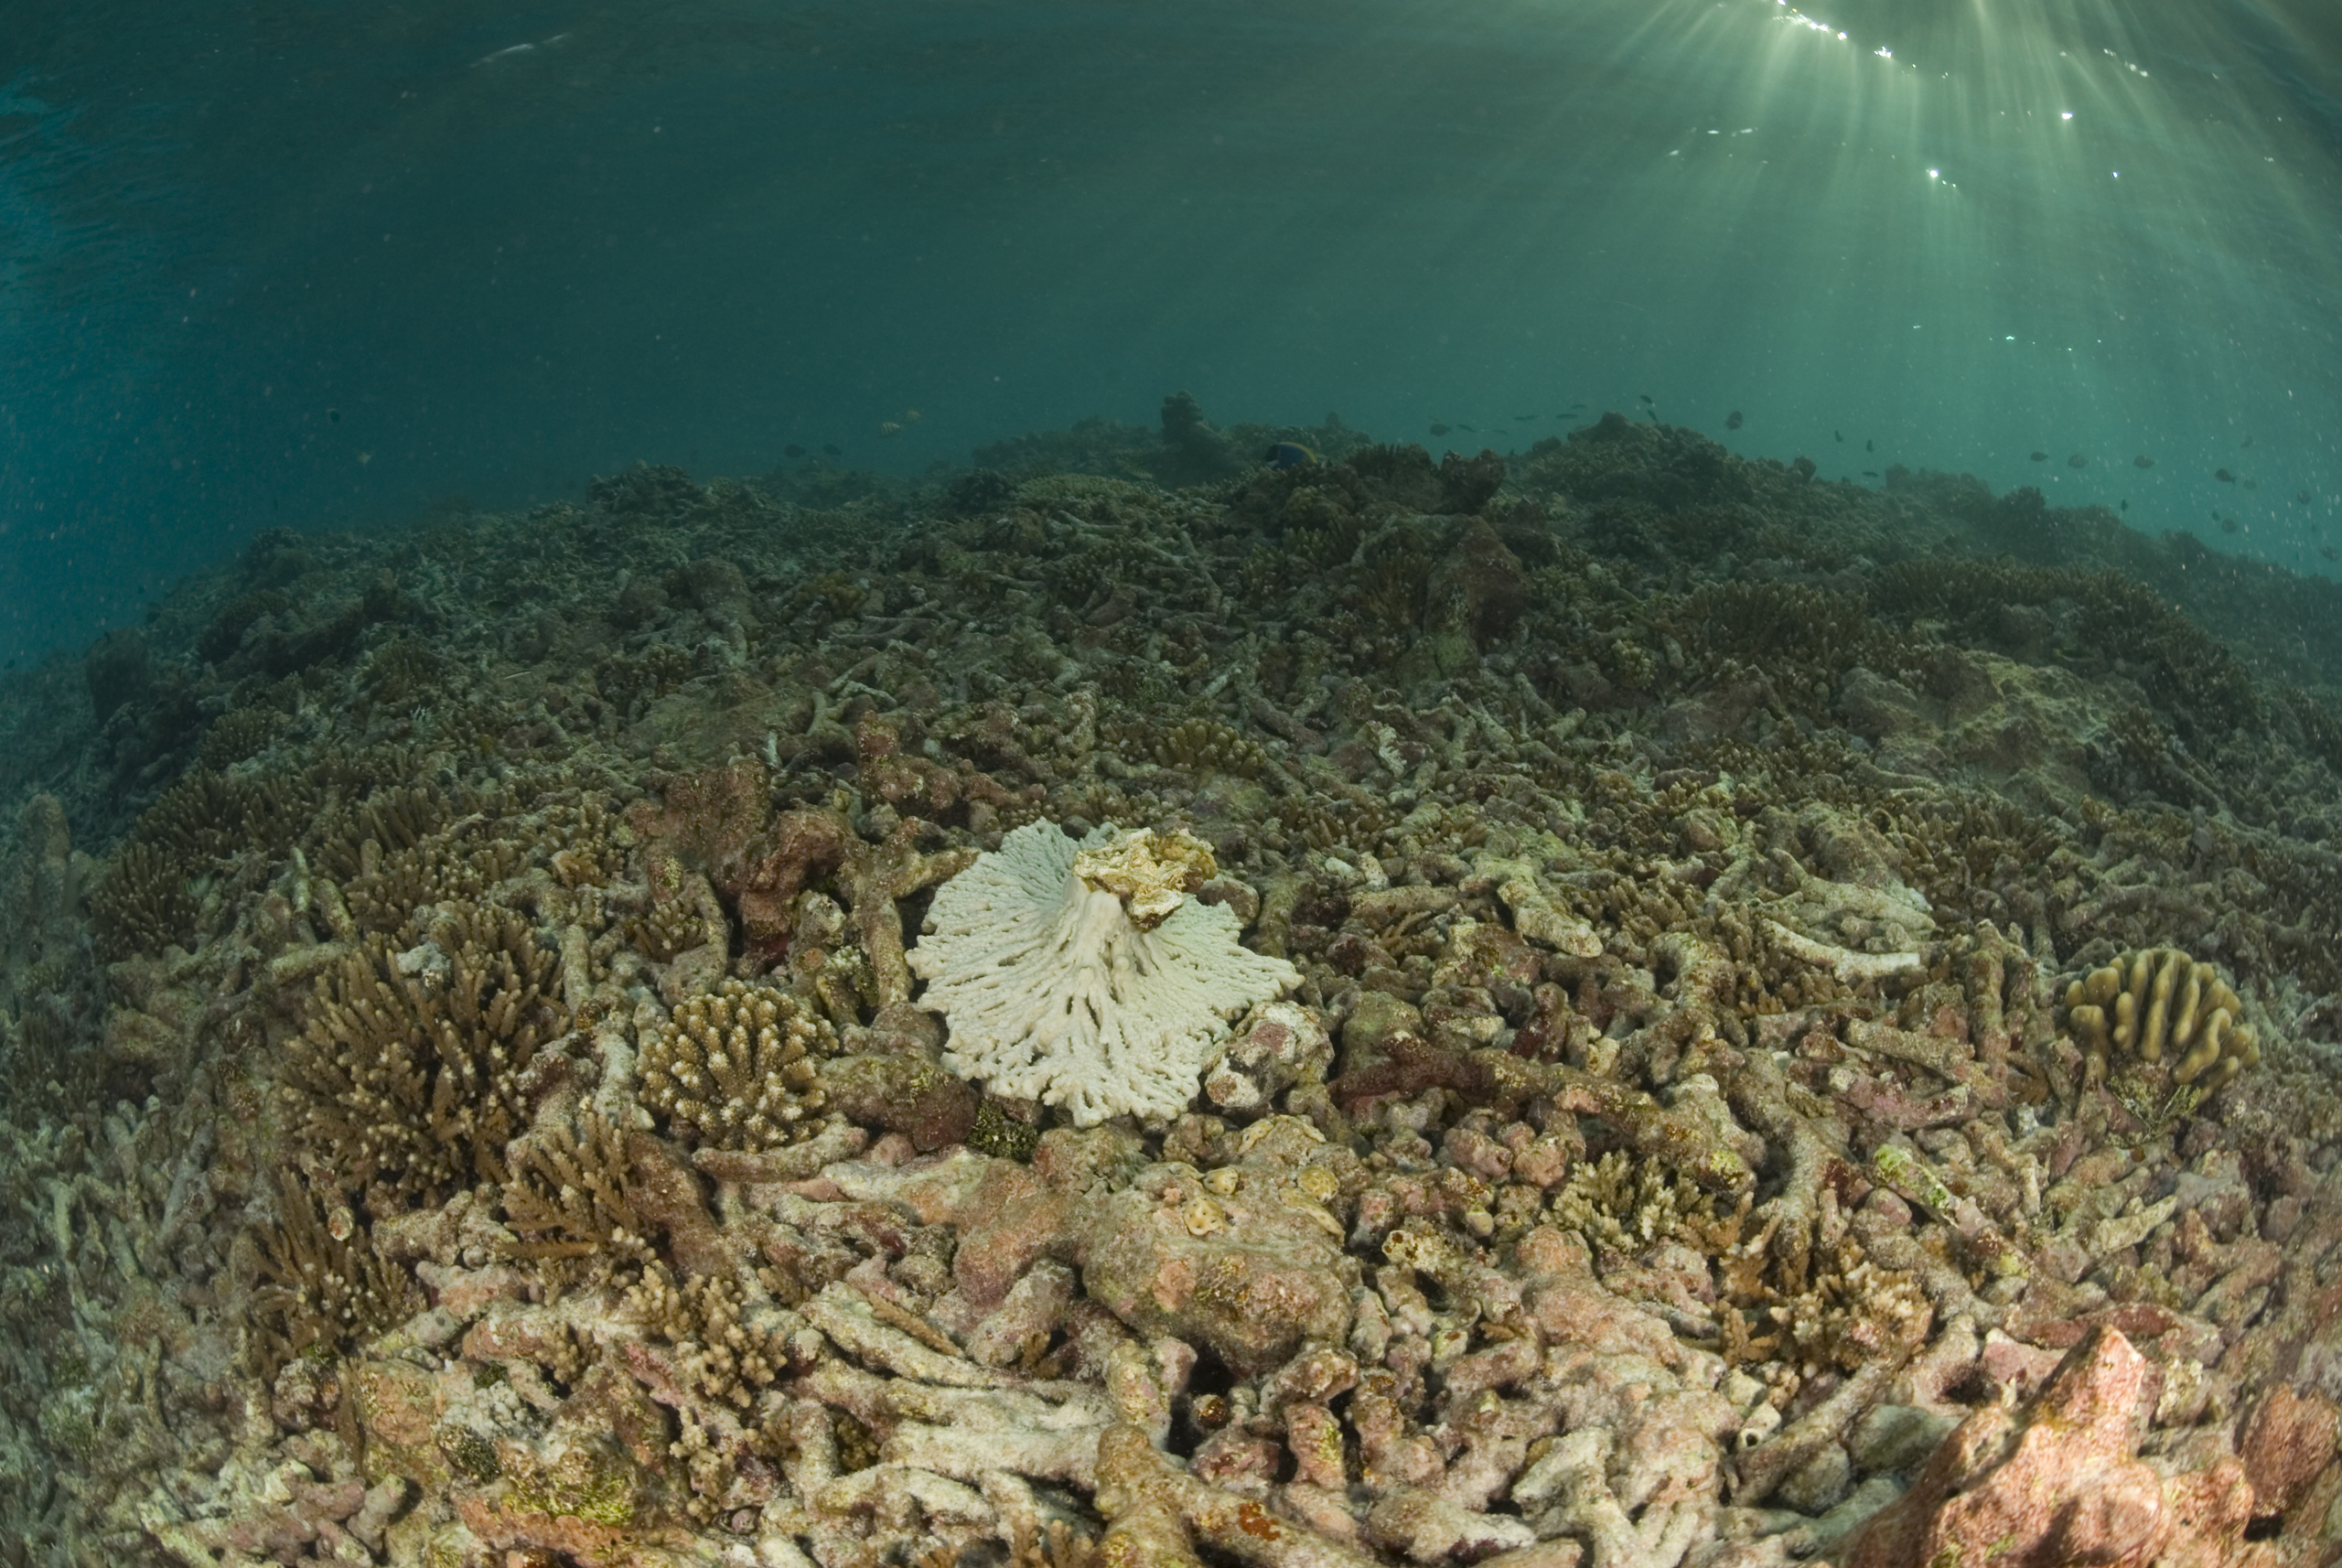 Coral reef in Seychelles that is degraded due to global warming.